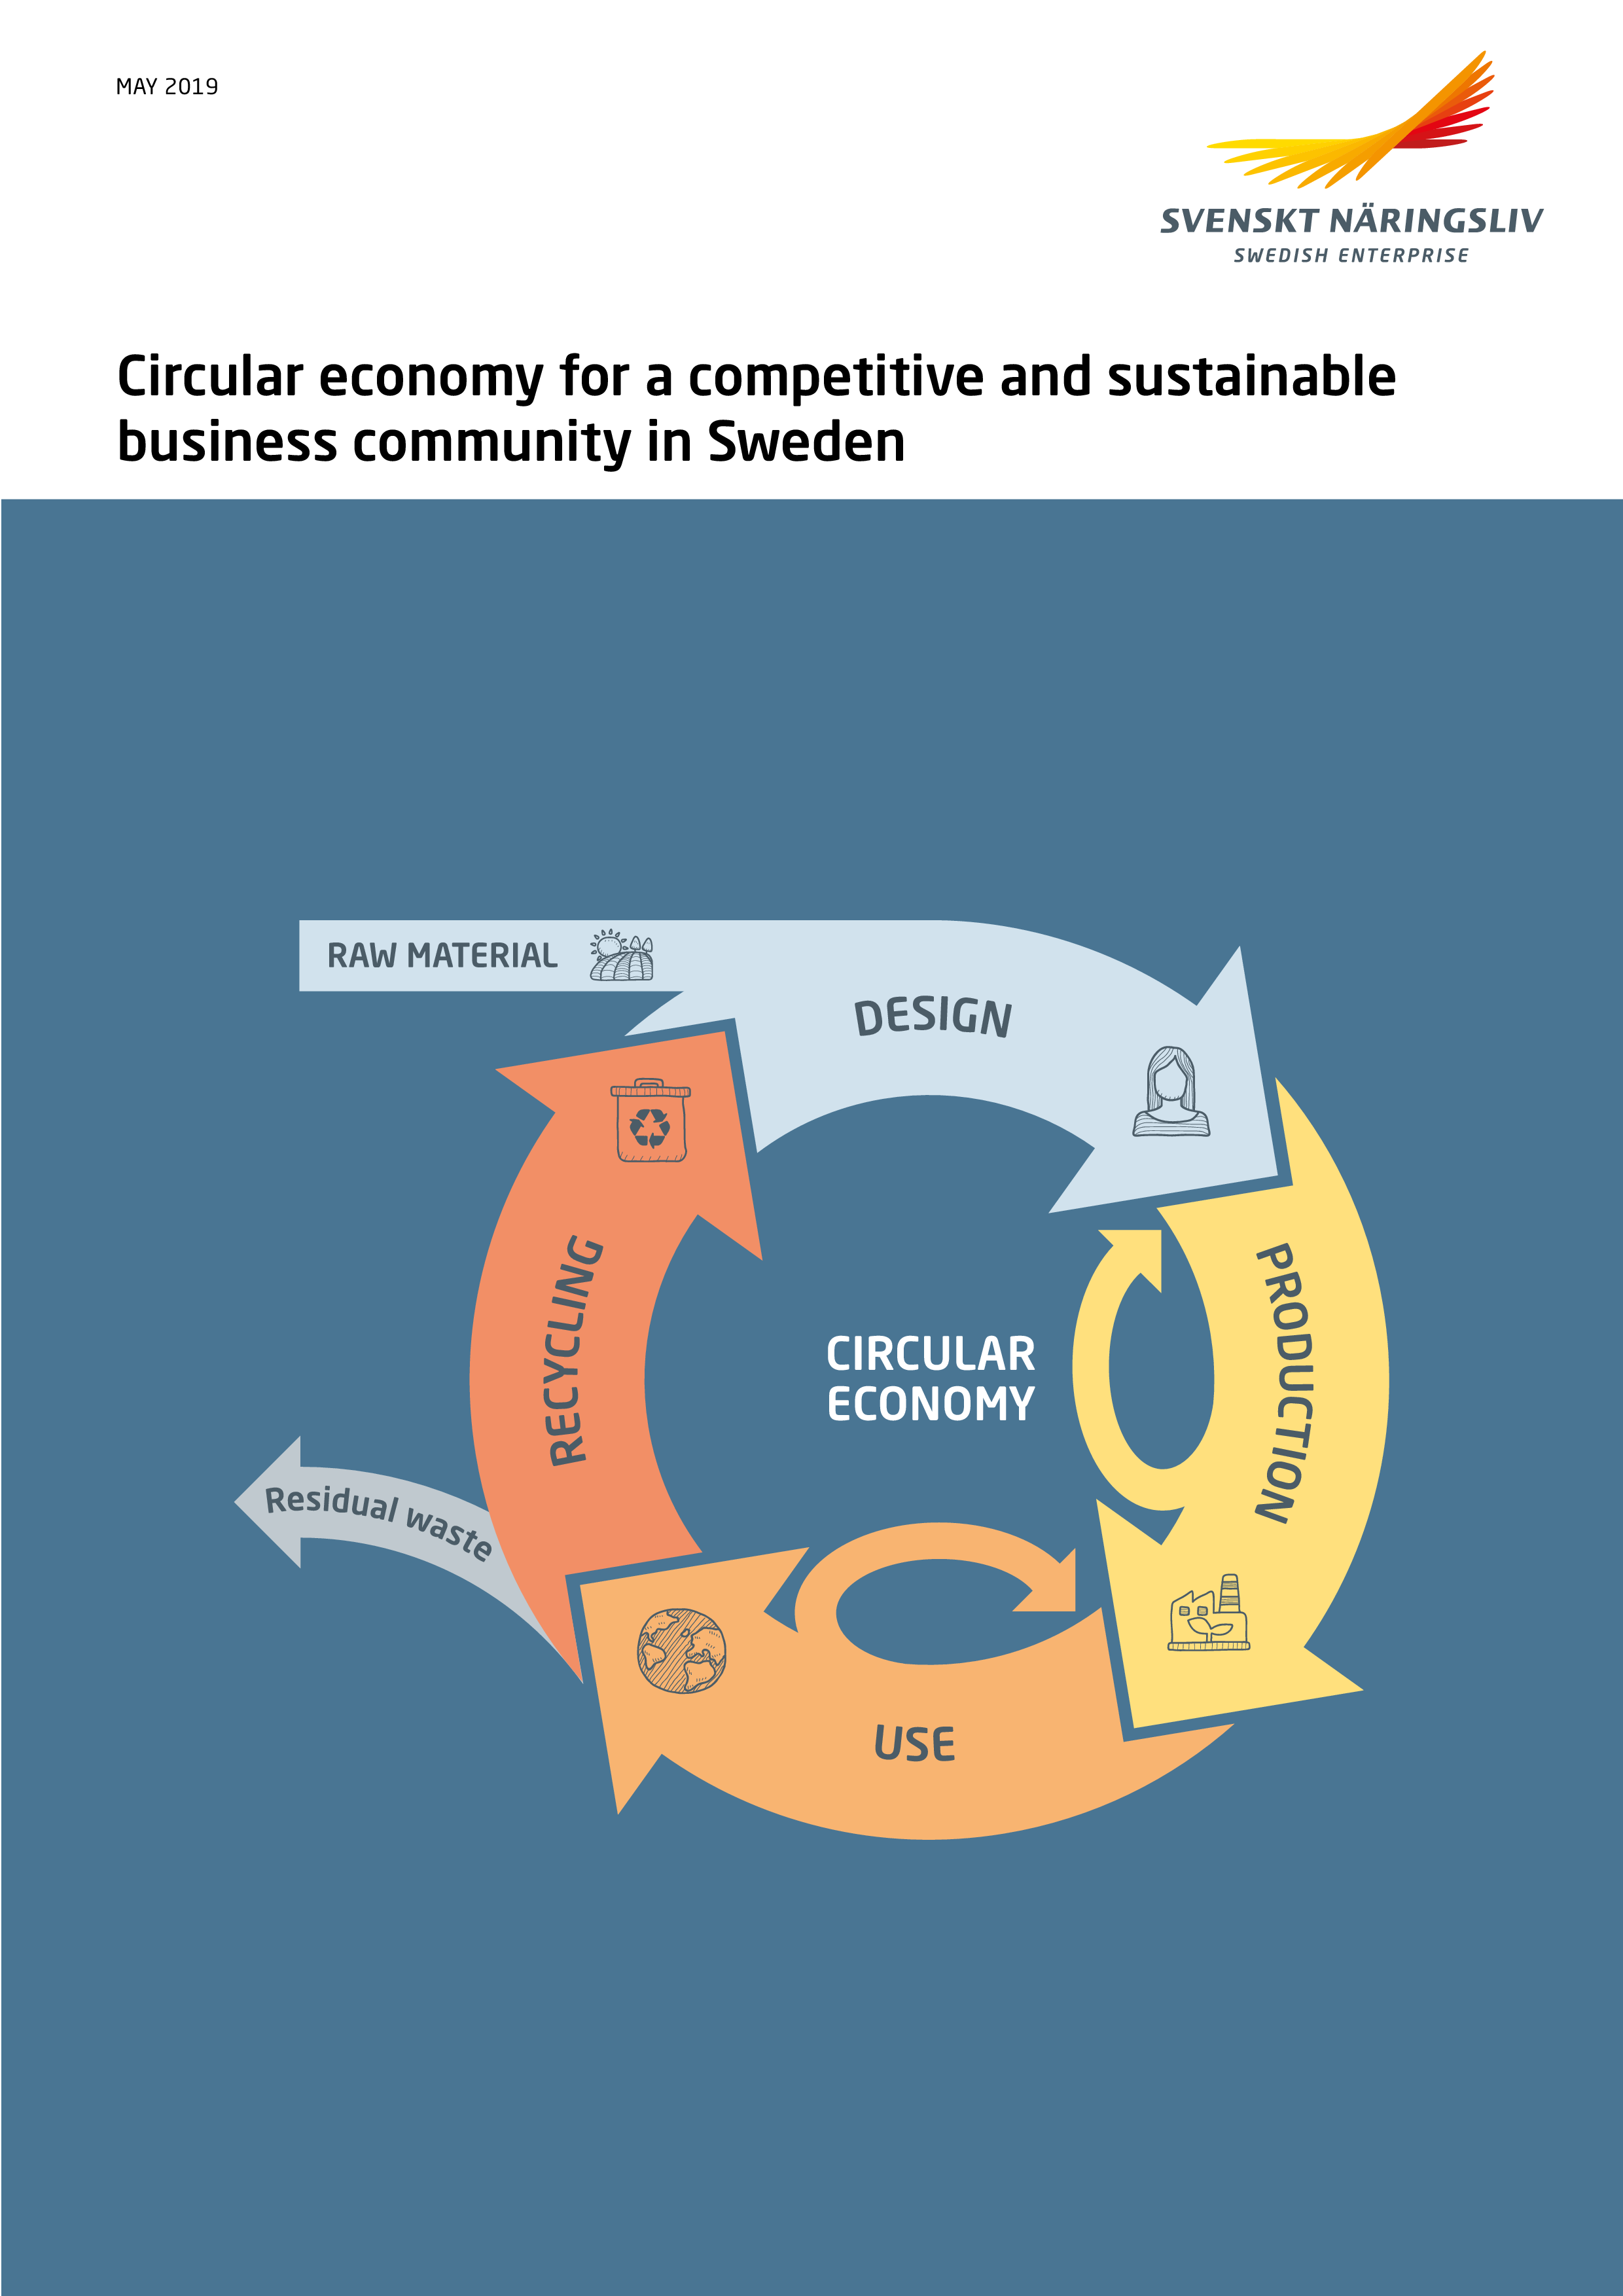 Circular economy for a competitive and sustainable business community in Sweden - Report